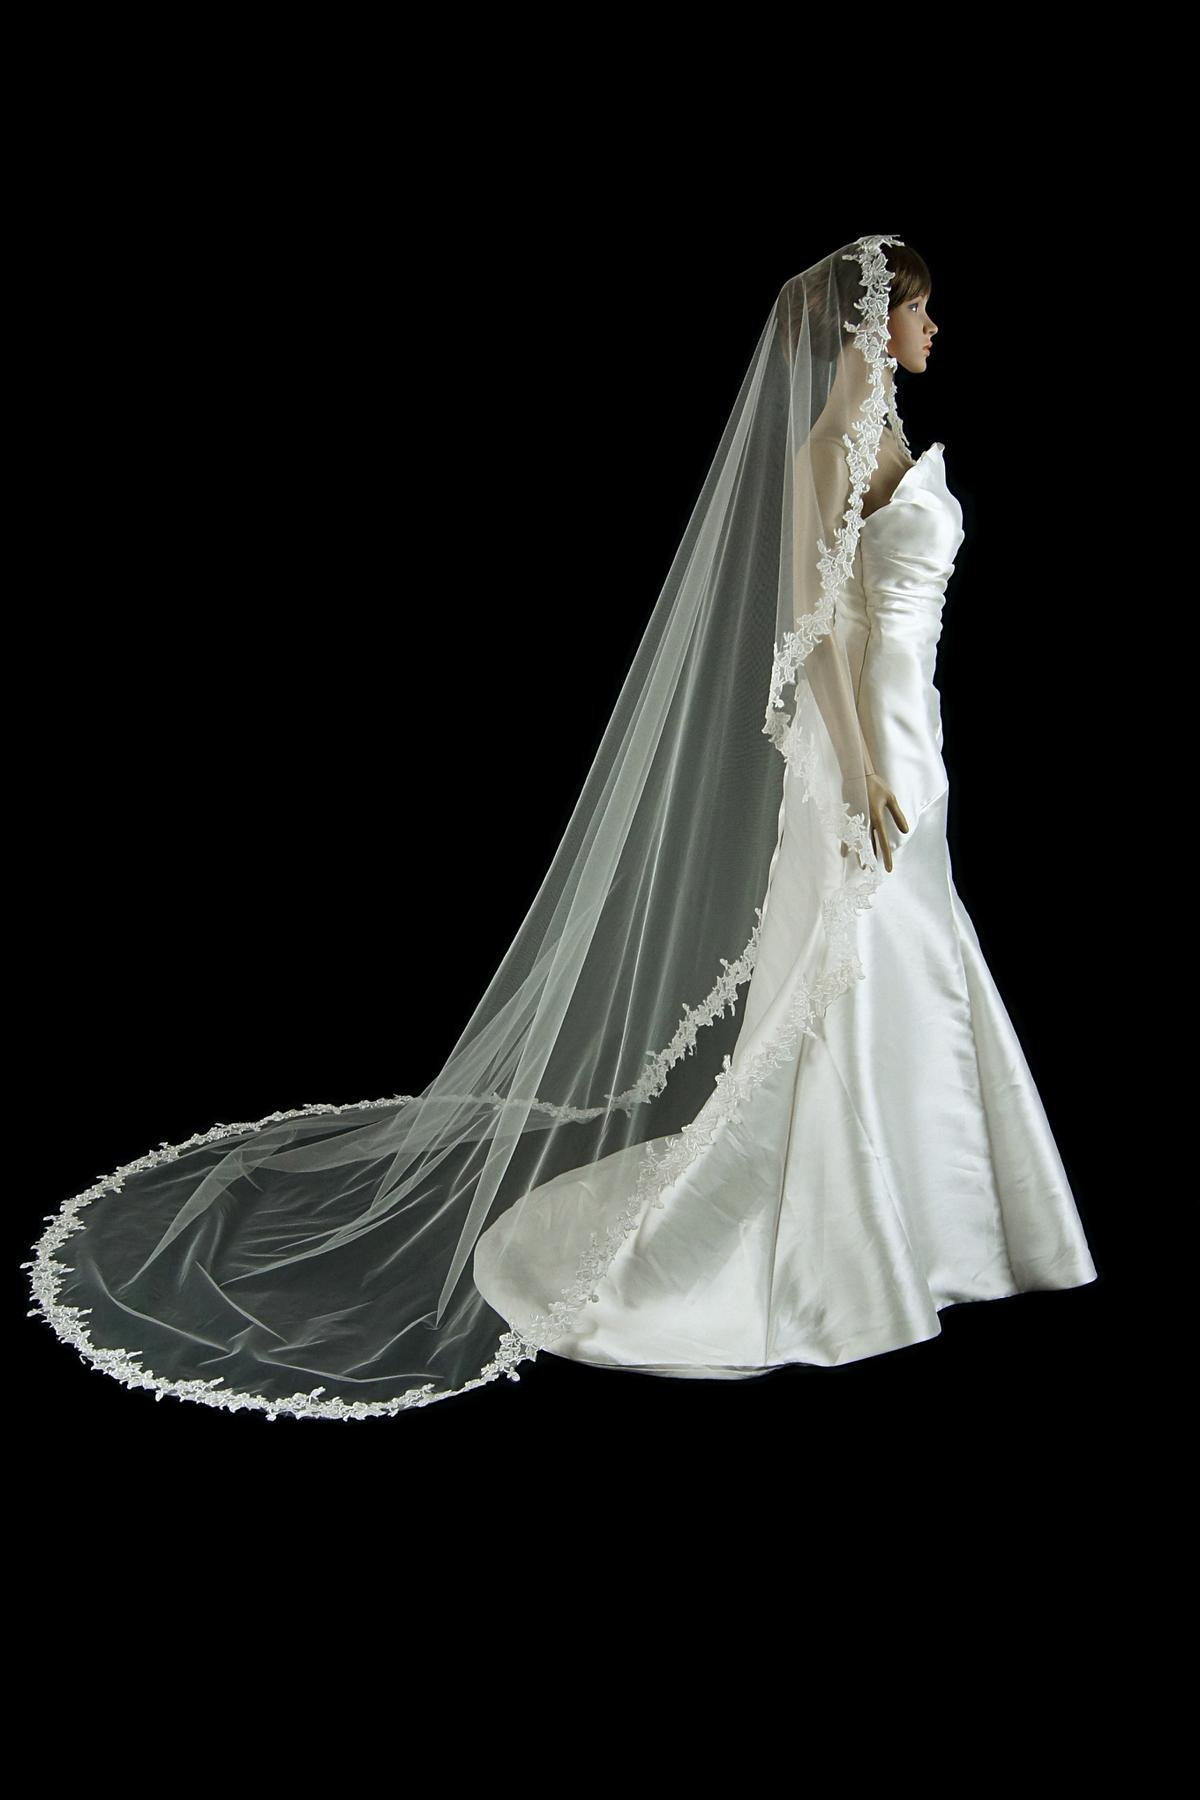 Bridal Mantilla Veil Ivory 1 Tier Long Cathedral Length With Simple Lace Edge by Velvet Bridal (Image #3)